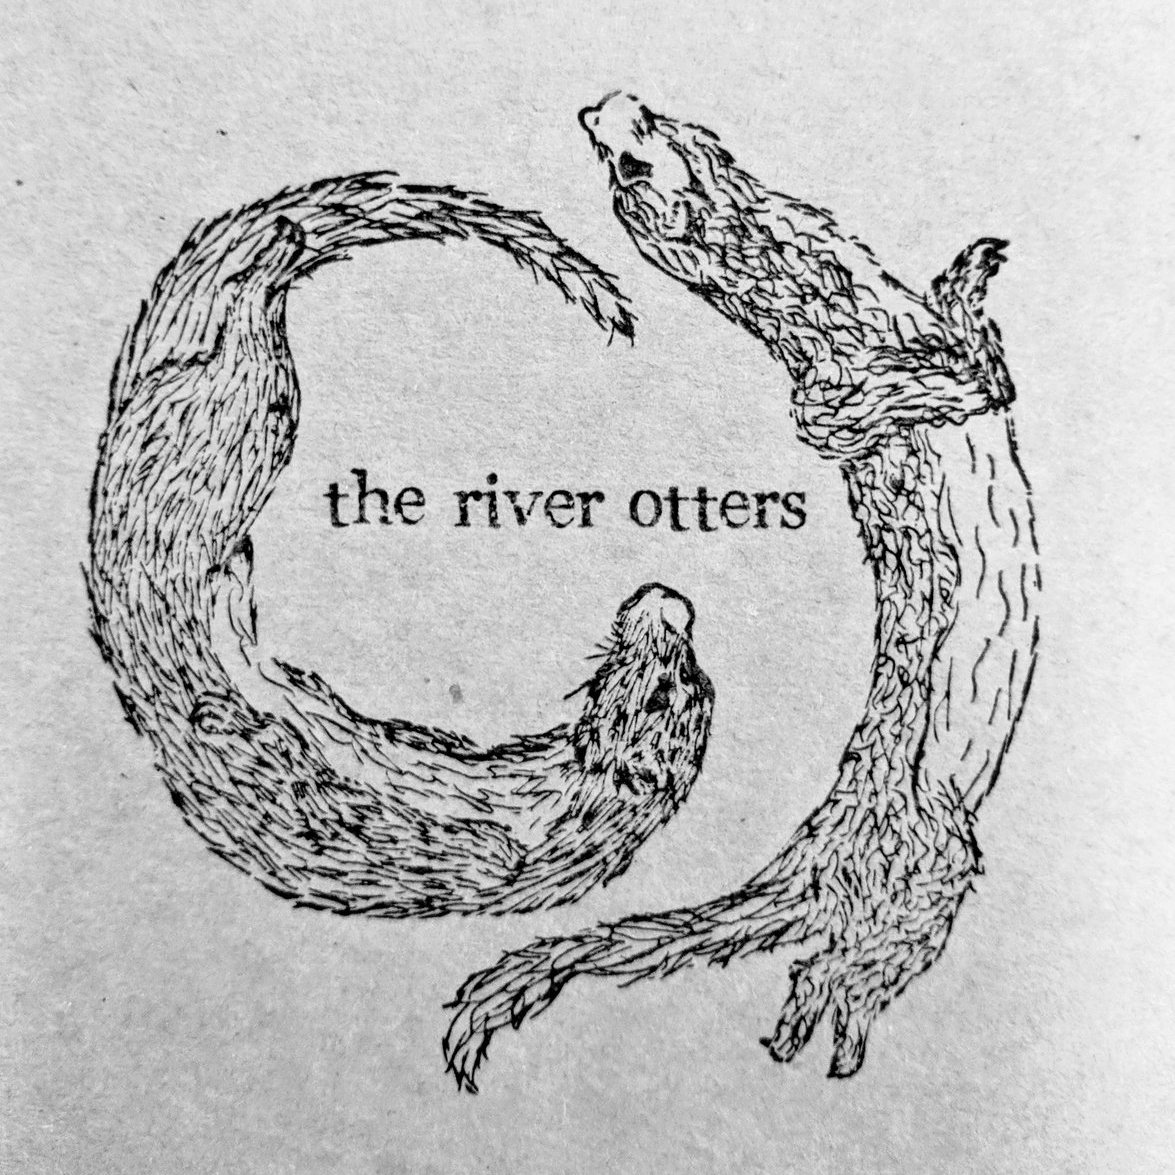 The River Otters